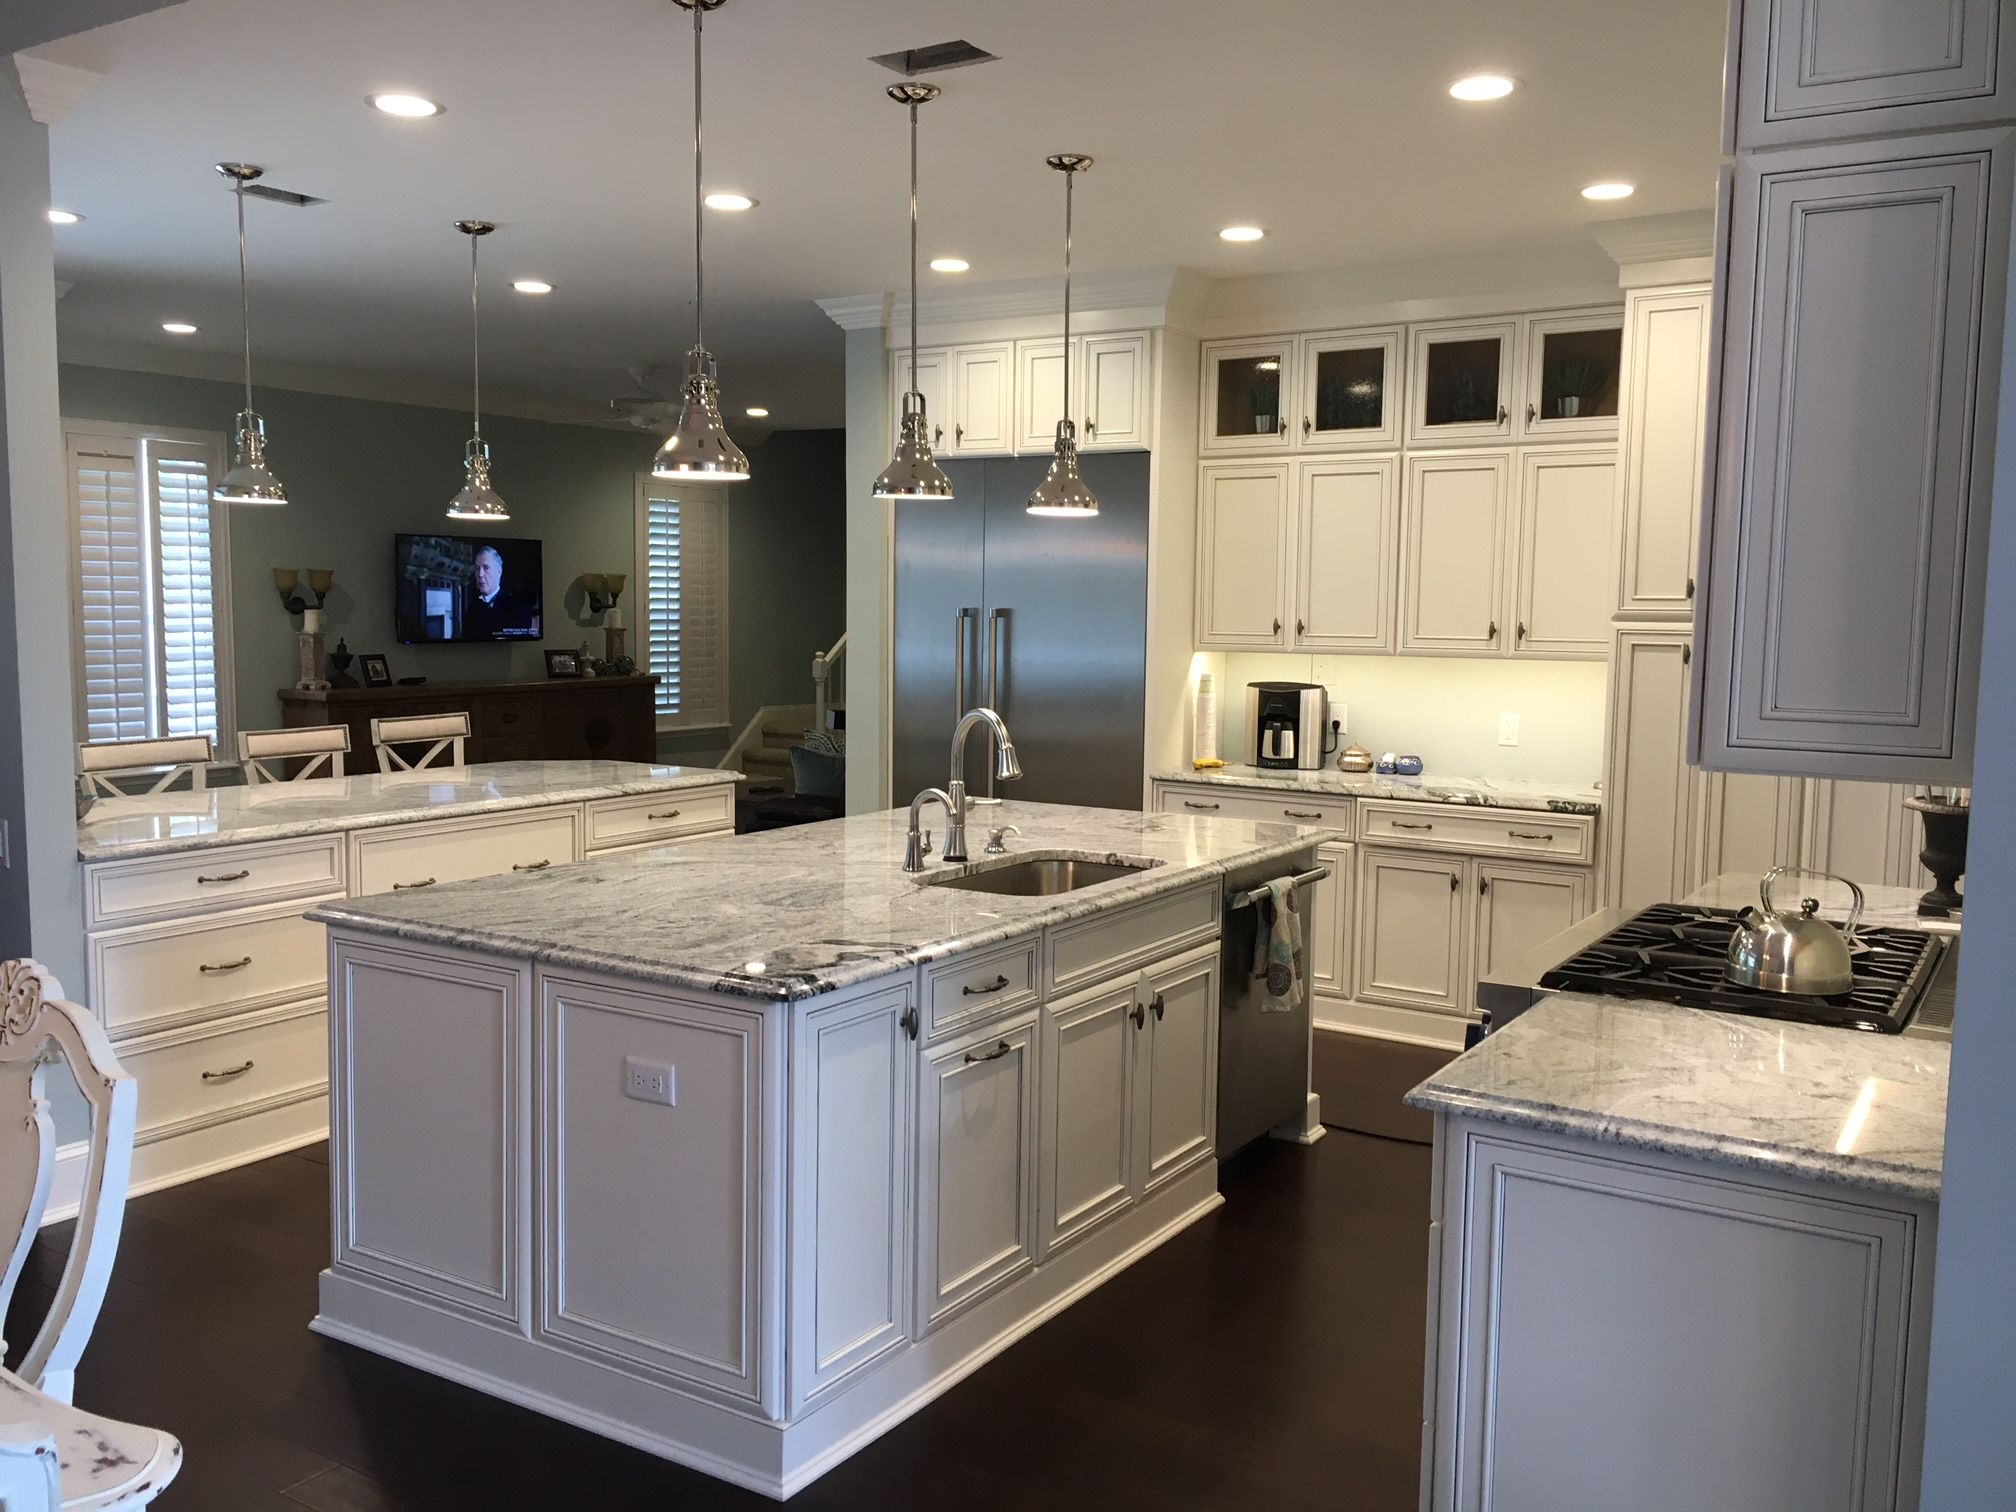 Our Kitchen Renovation Double Island Thermador Pro Series Appliances And Custom Cabinets Italian Kitchen Decor Kitchen Cabinet Inspiration Kitchen Renovation